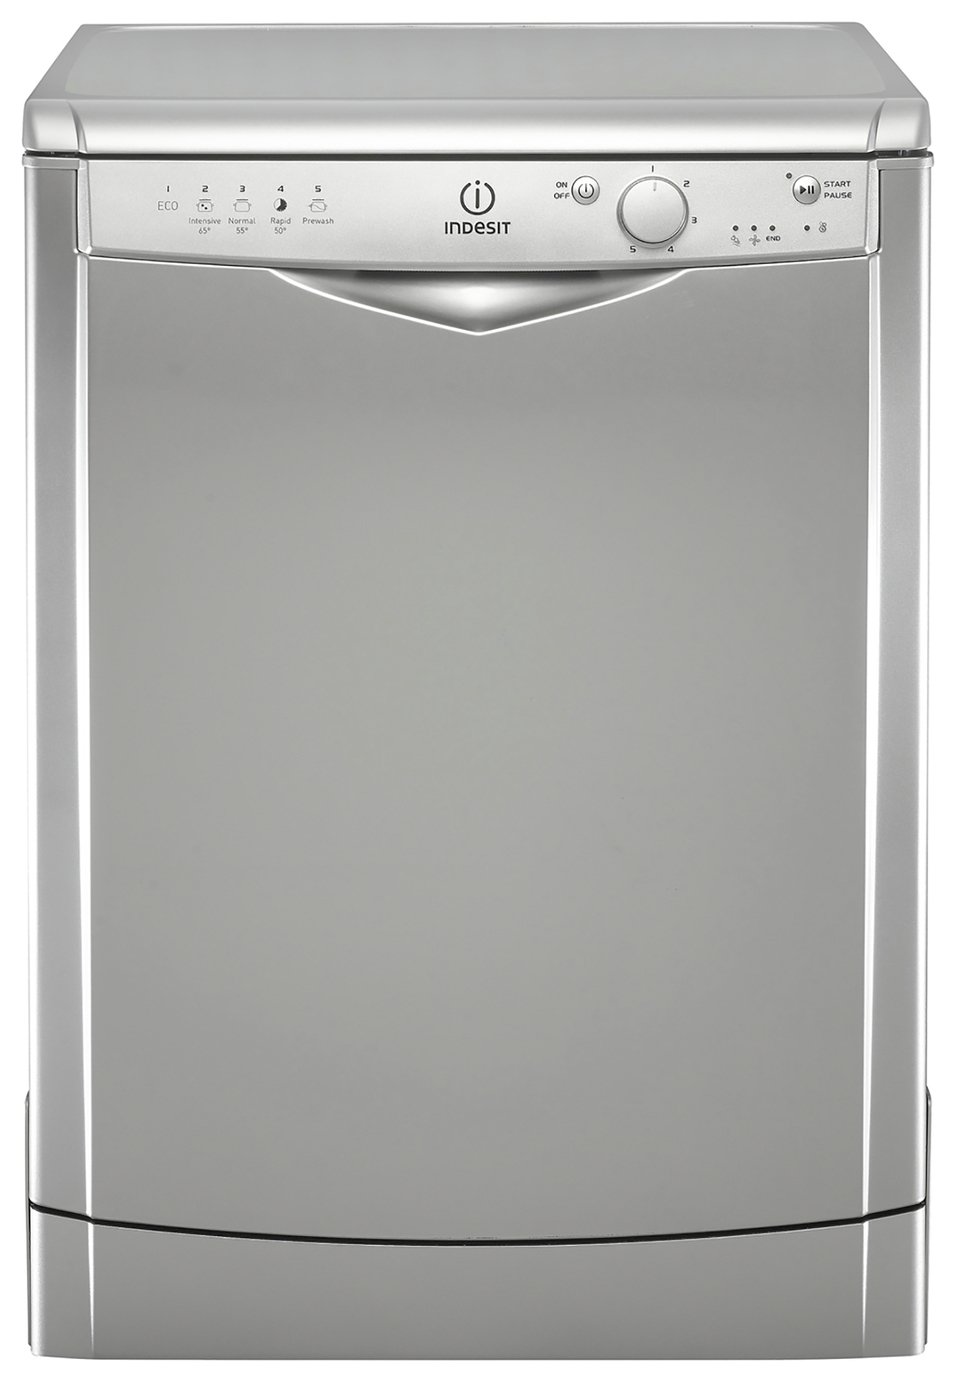 Indesit DFG15B1S Full Size Dishwasher - Silver